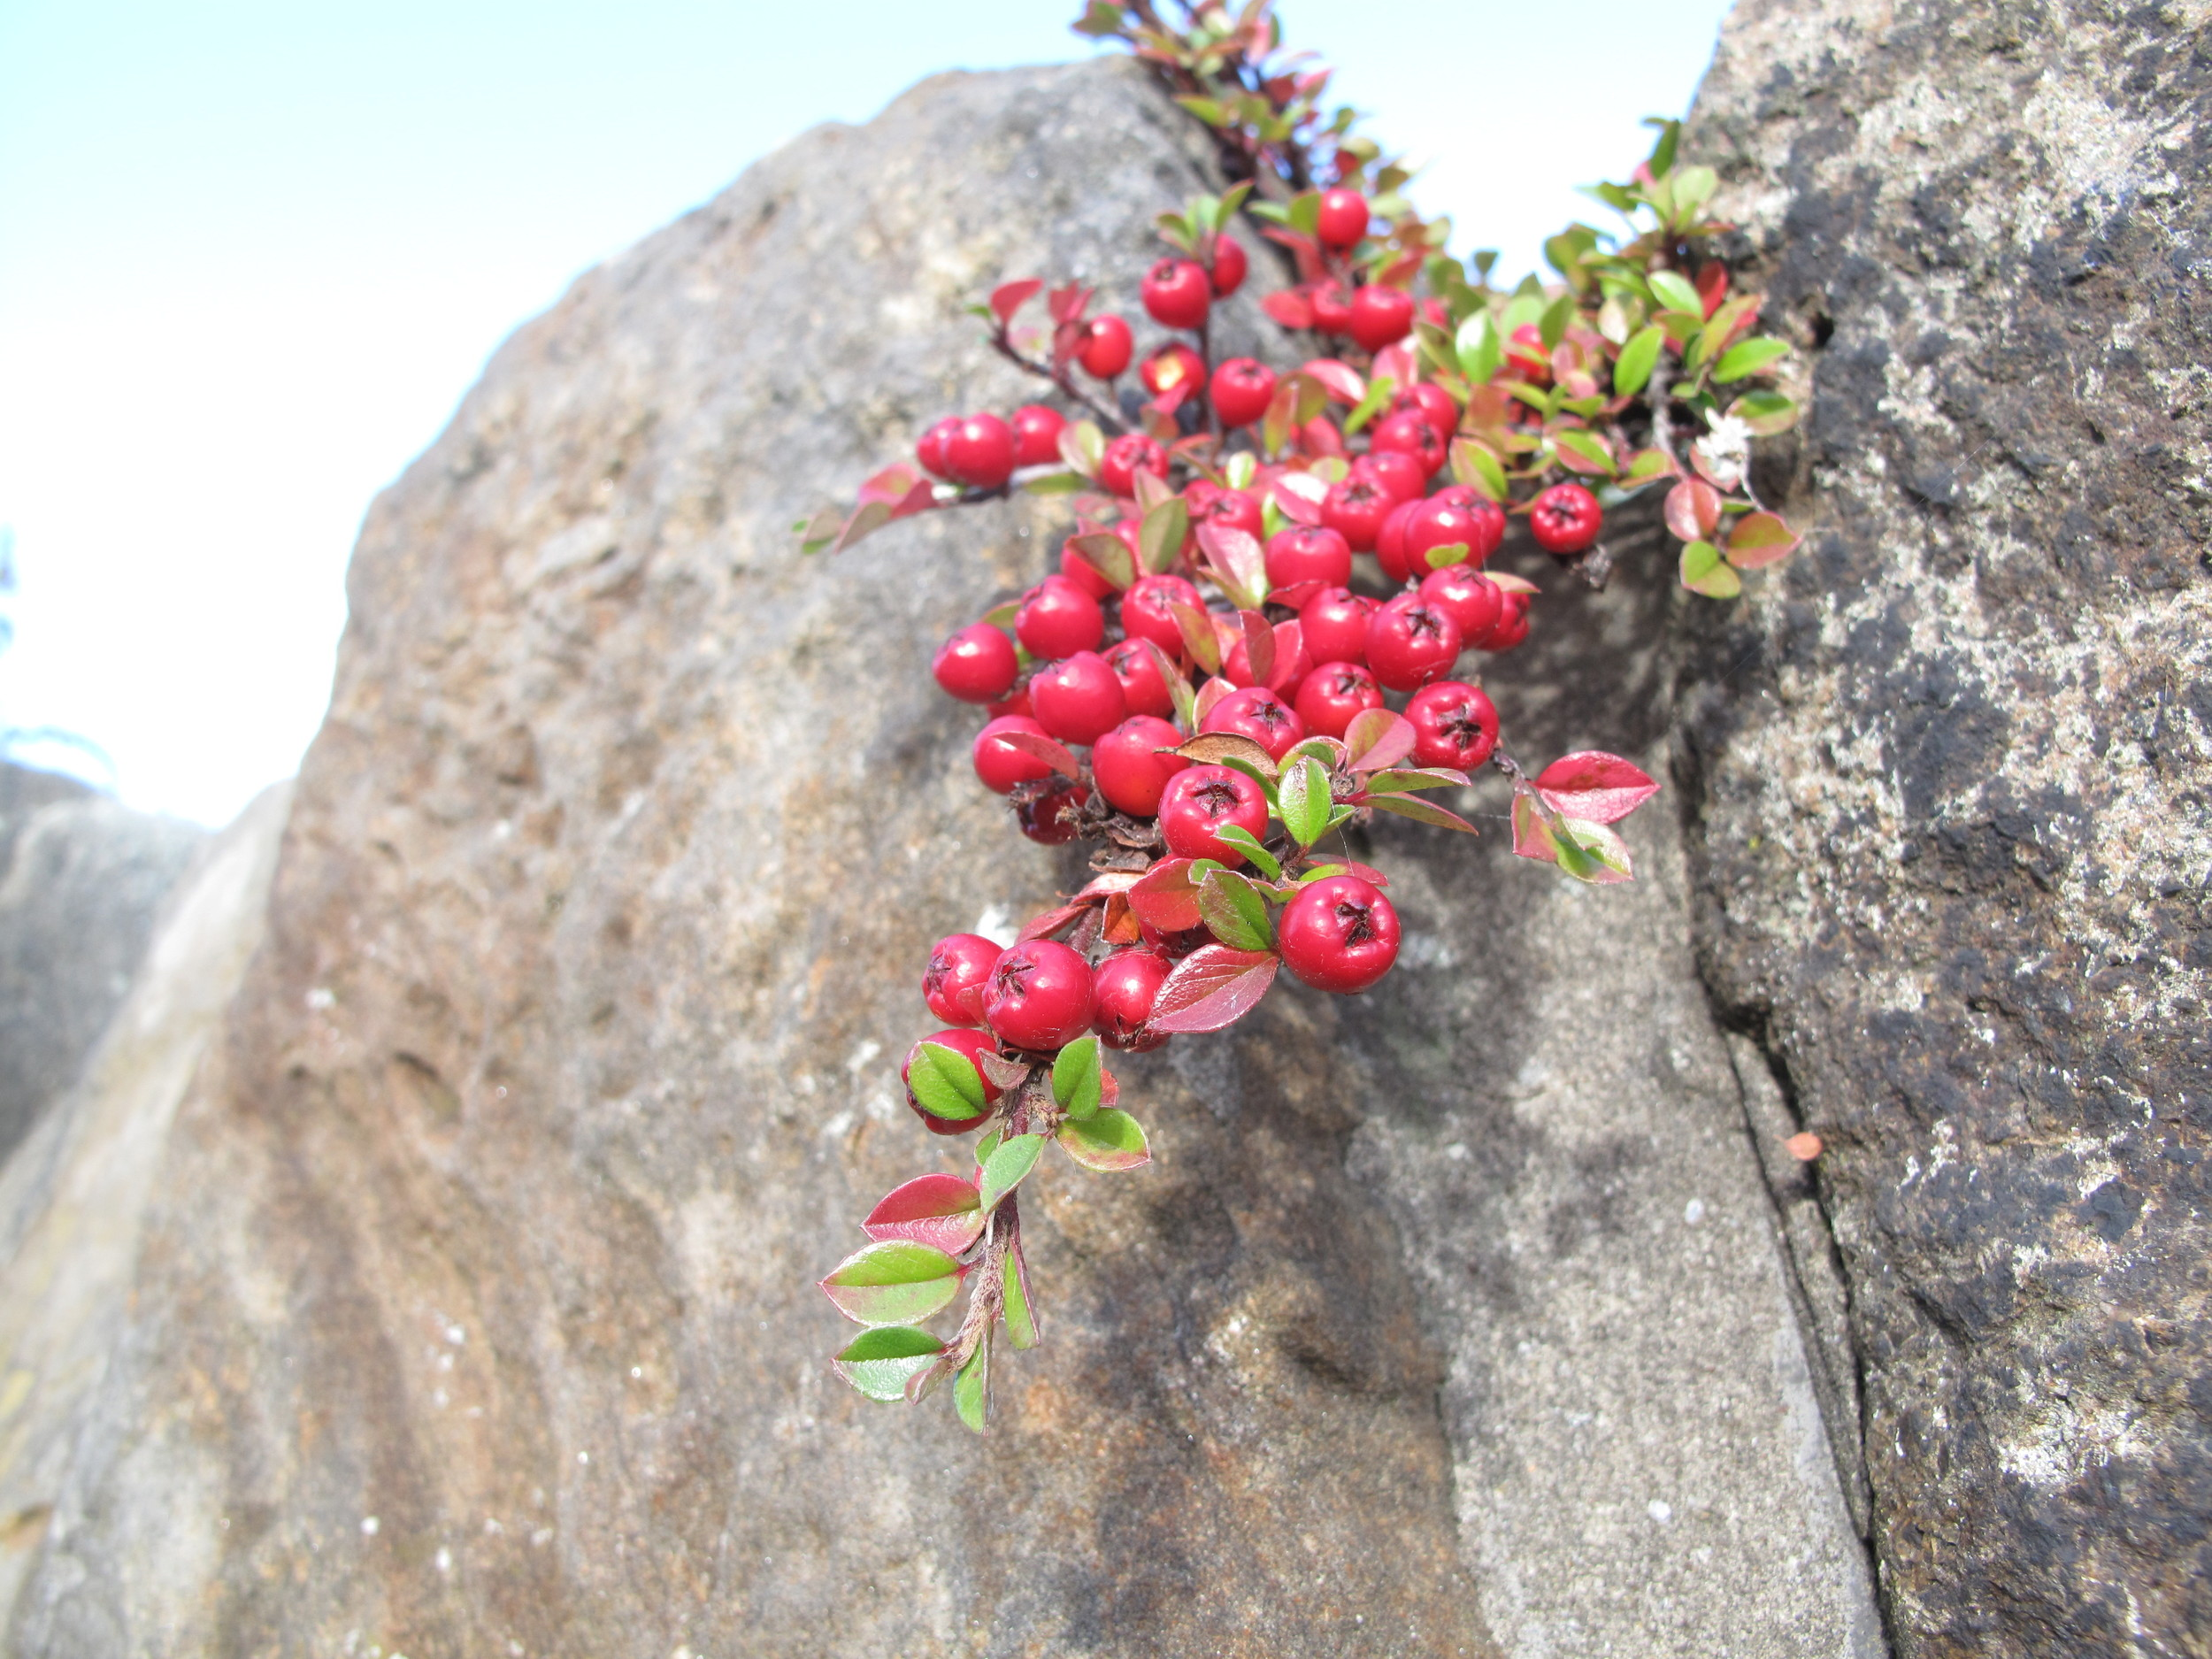 Red berries and rocks.